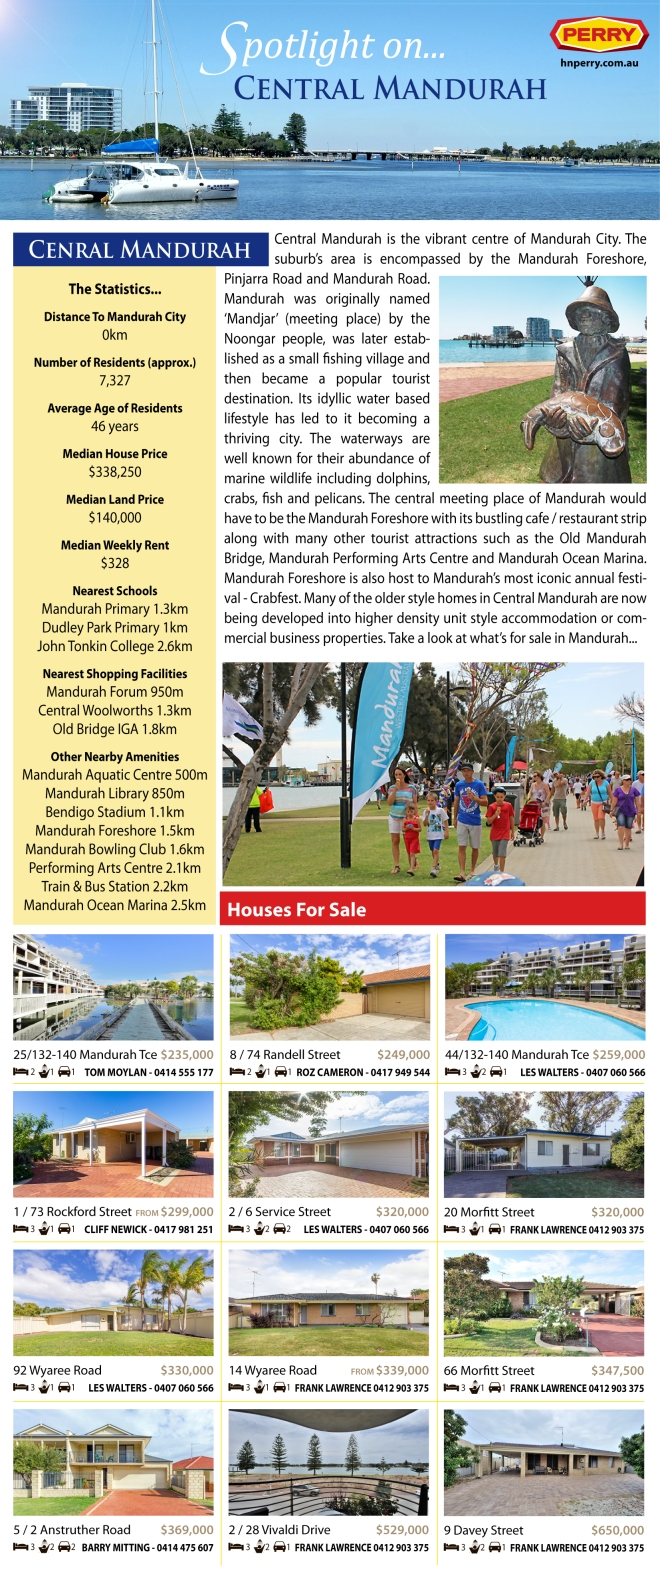 Spotlight on Mandurah